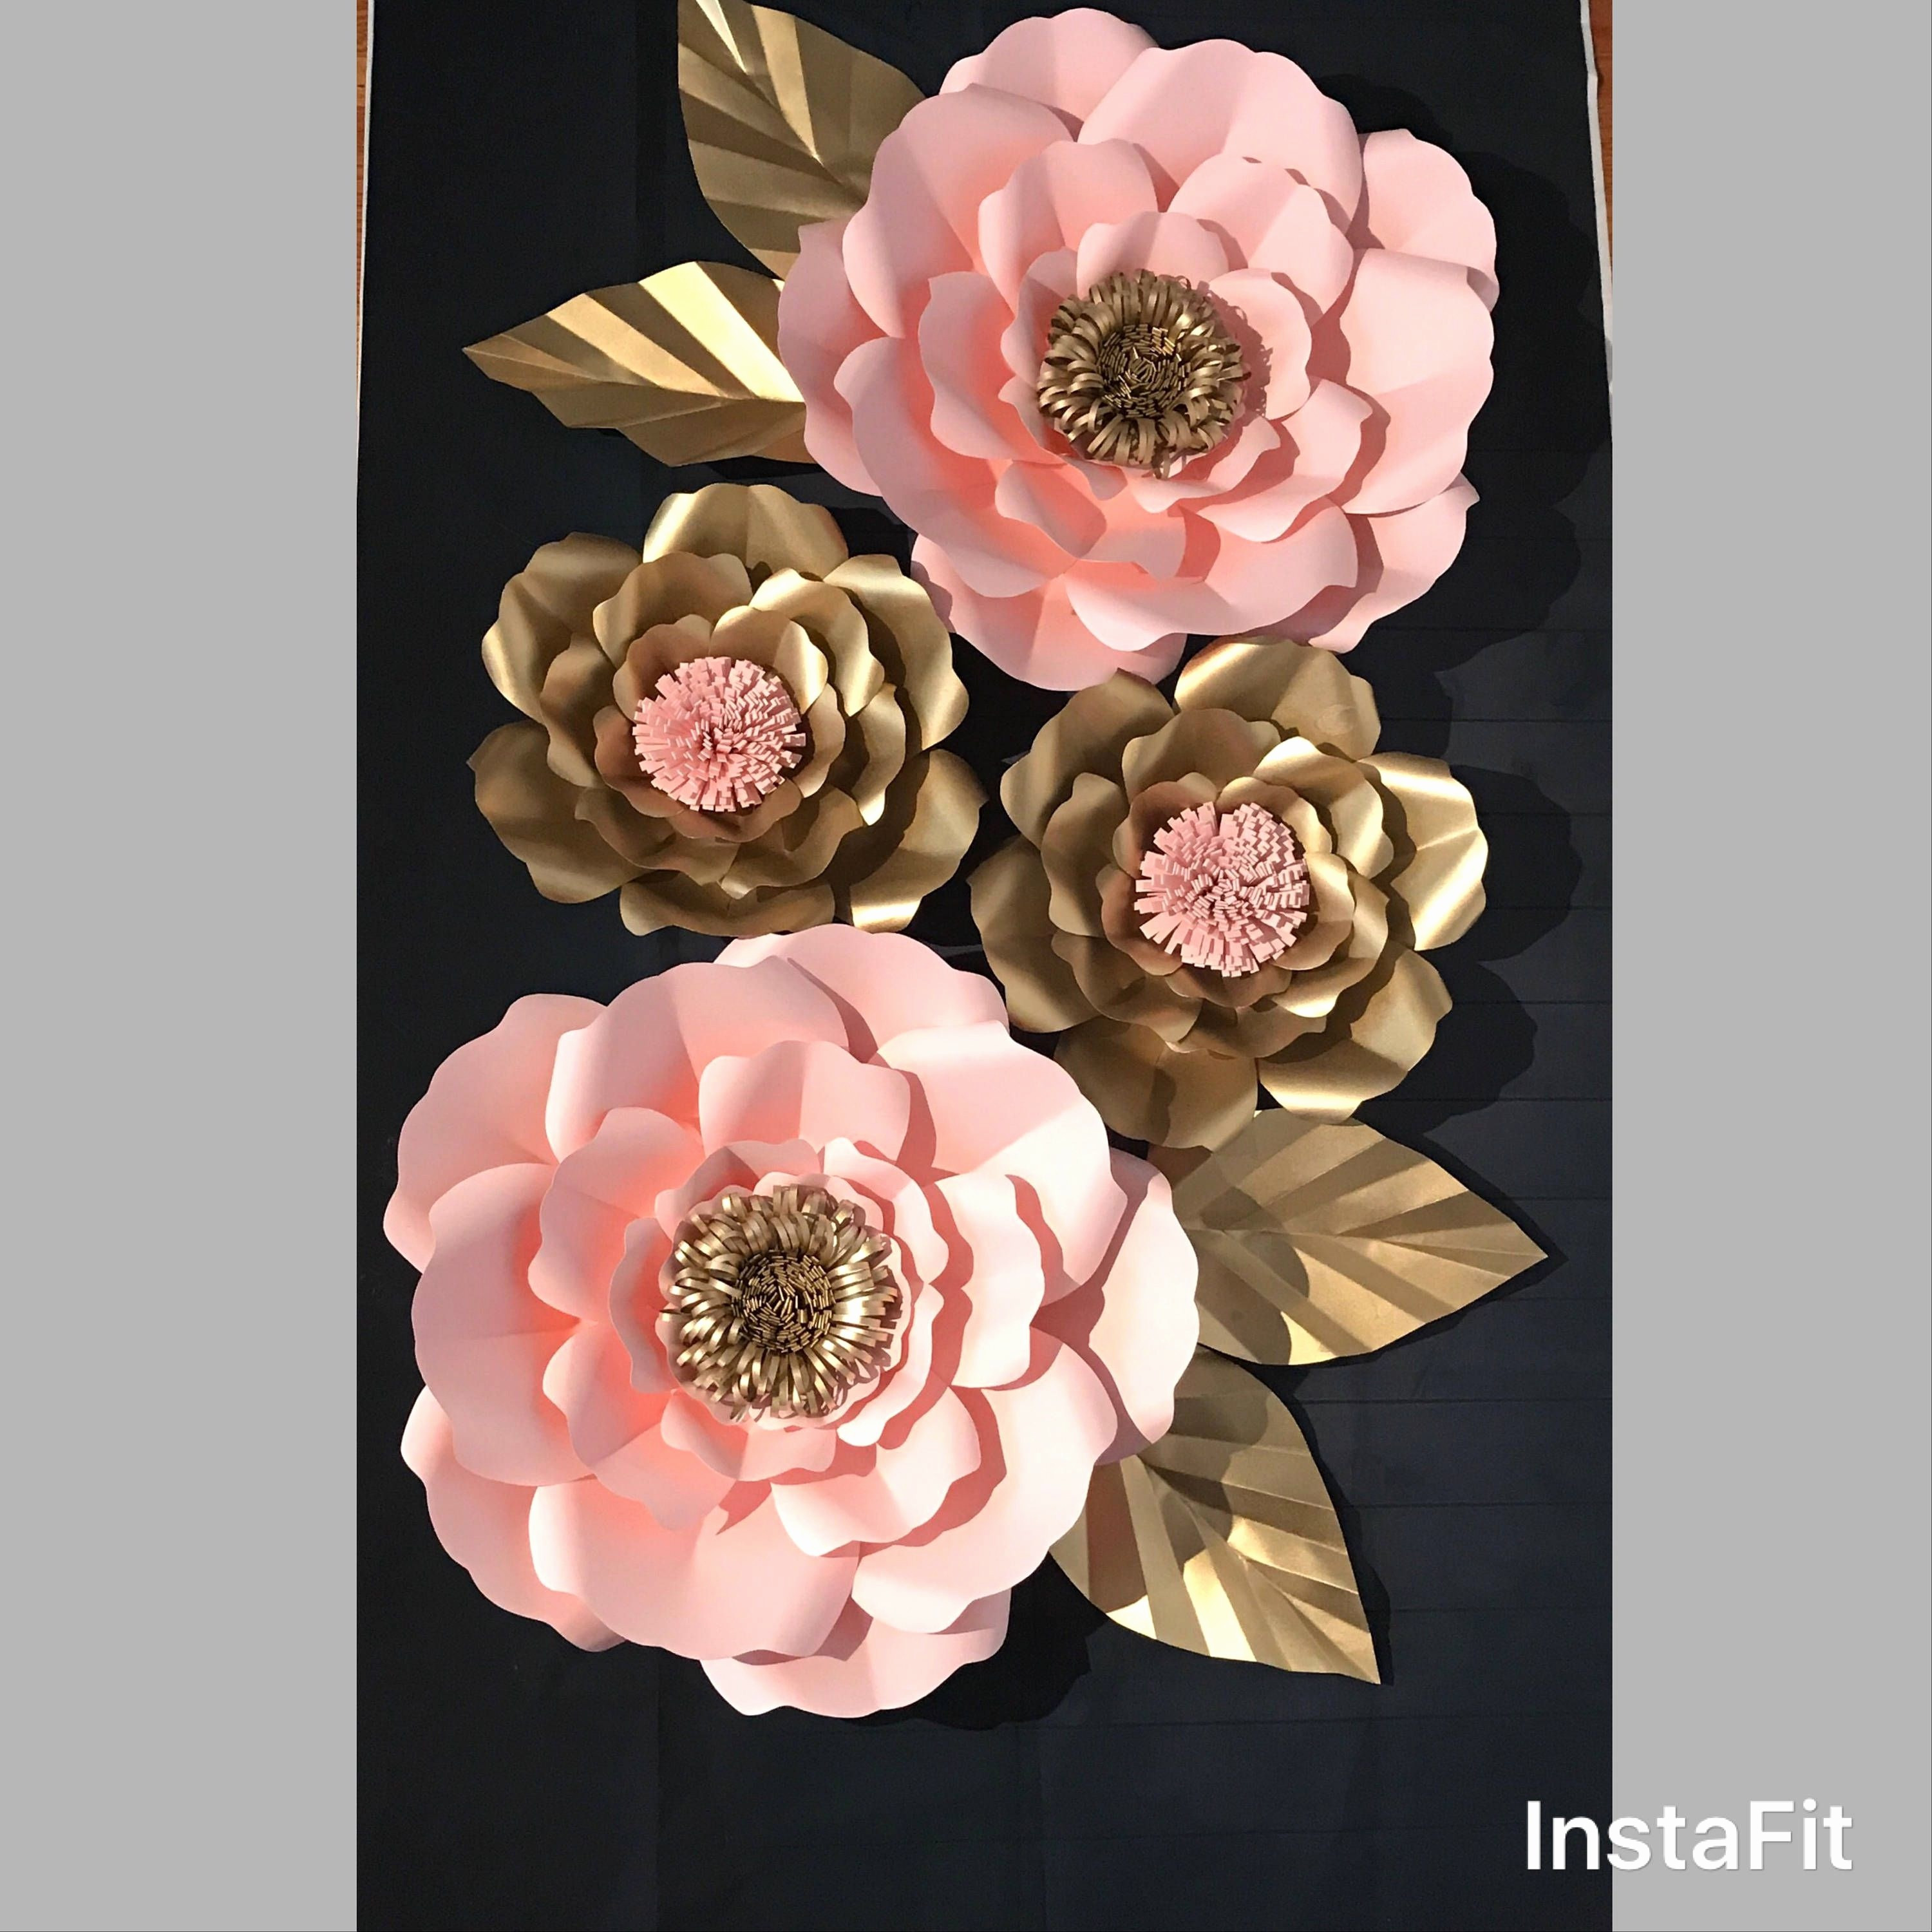 Diy Vase Decor Of Flower Pictures Awesome New Diy Home Decor Vaseh Vases Decorative for Flower Pictures Luxury Unique Floral Decor for Home Beautiful Decor Floral Decor Floral Of Flower Pictures